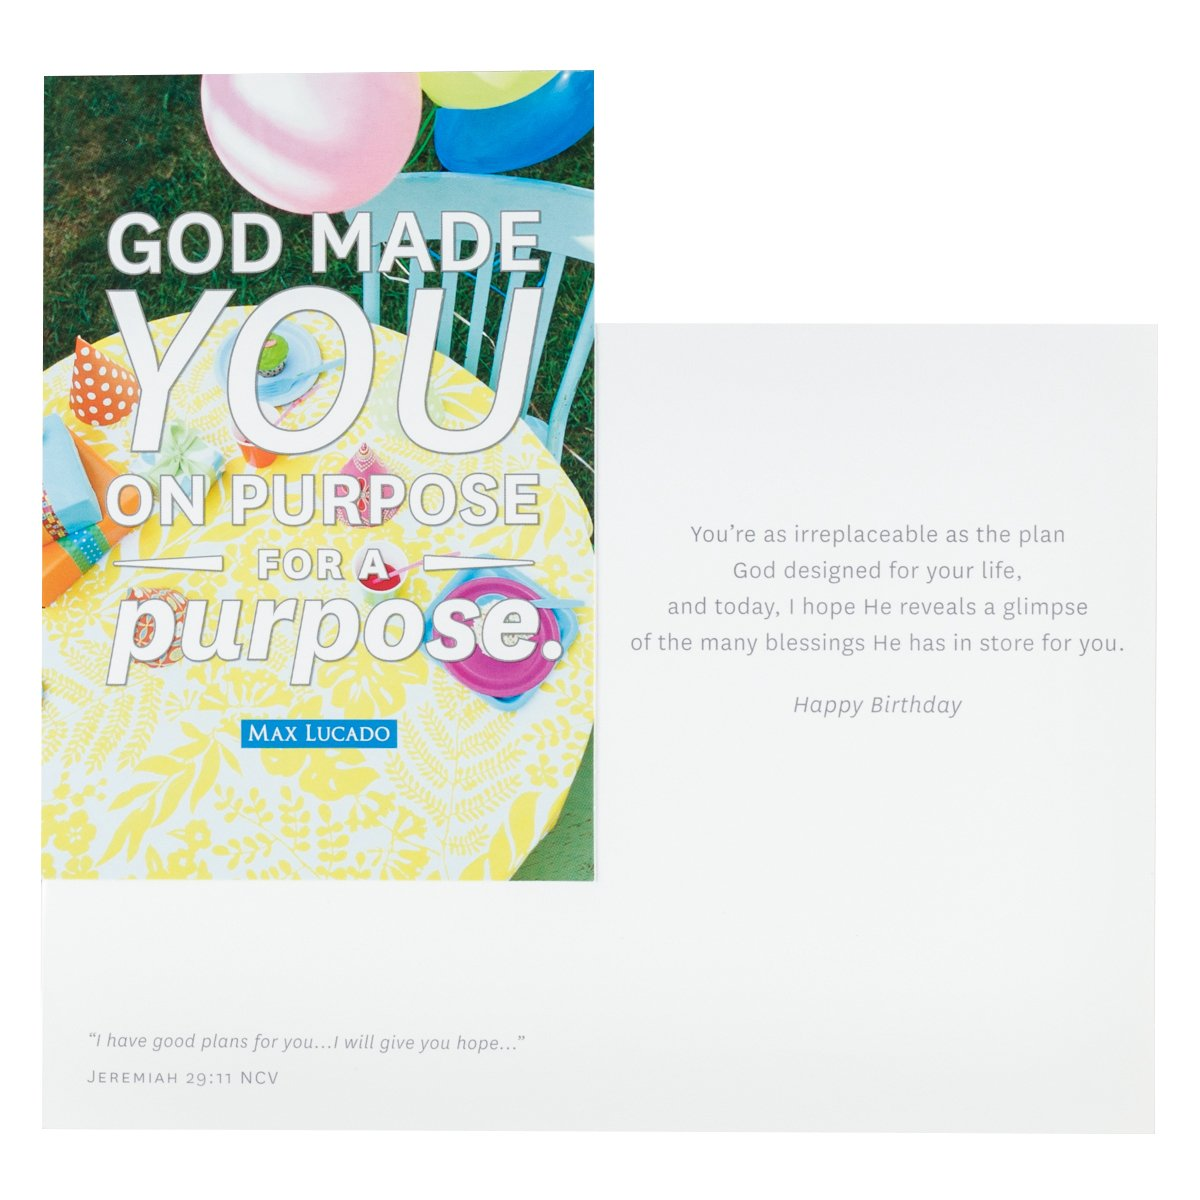 Dayspring birthday boxed greeting cards 12 count with embossed dayspring birthday boxed greeting cards 12 count with embossed envelopes max lucado god made you amazon office products kristyandbryce Choice Image